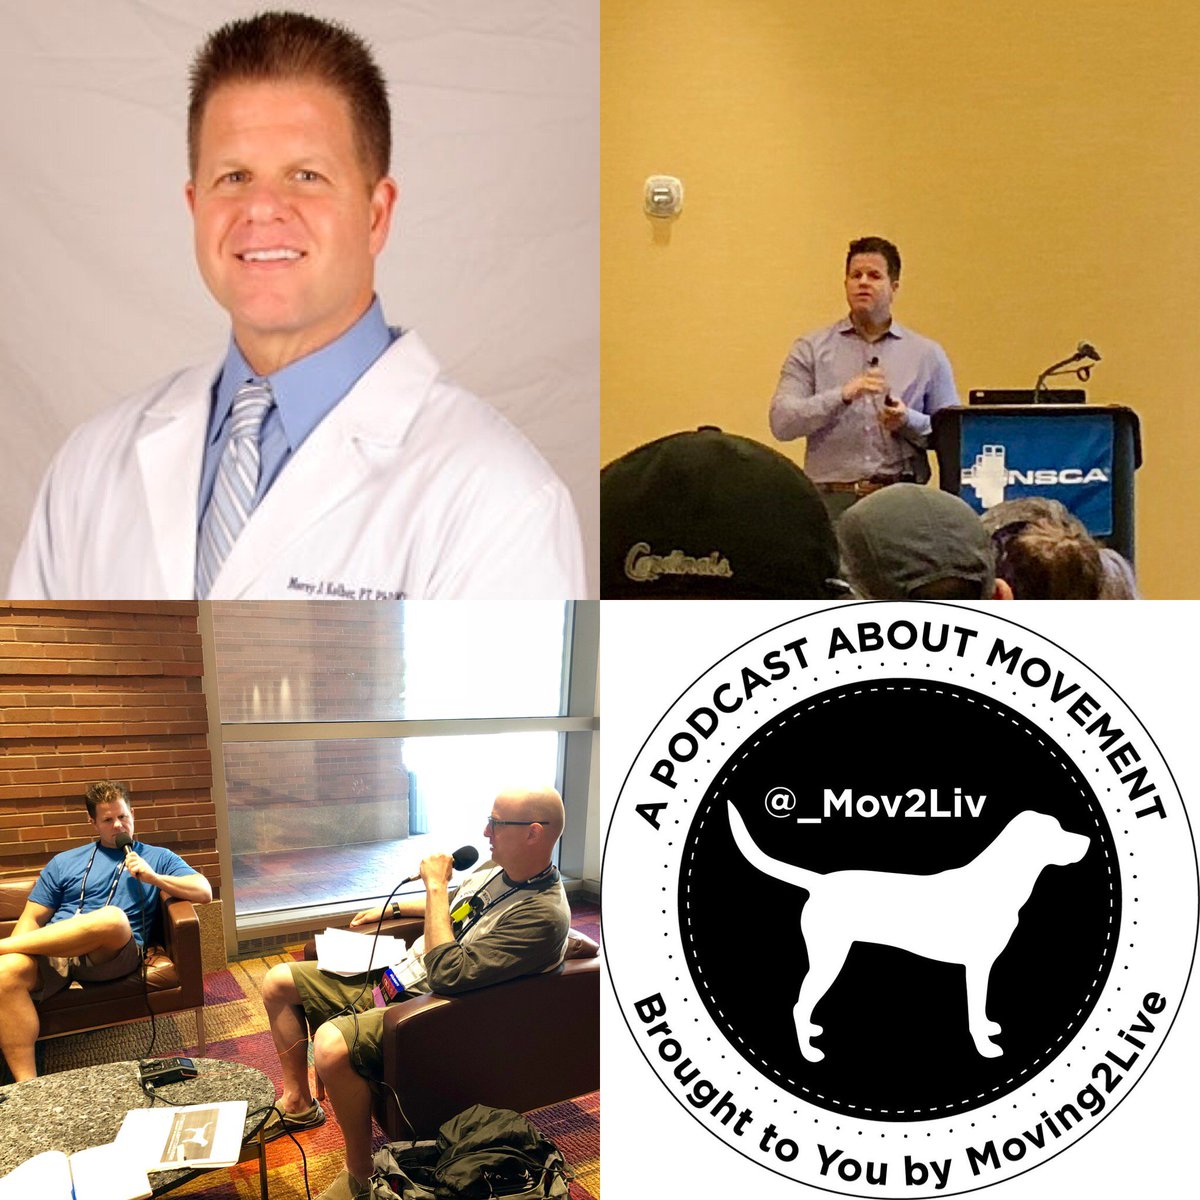 ICYMI: latest #Moving2Live #podcast features @reutebh talking w/ @MoreyJKolberPT about how to keep people moving, training the next generation #physicaltherapist &amp; more!  #orthopaedic #nsca #cscs #mckenziemethod #FitLabPGH #novasoutheasternuniversity    http:// bit.ly/M2LMoreyKolber part1 &nbsp; … <br>http://pic.twitter.com/QYlZEJc40q